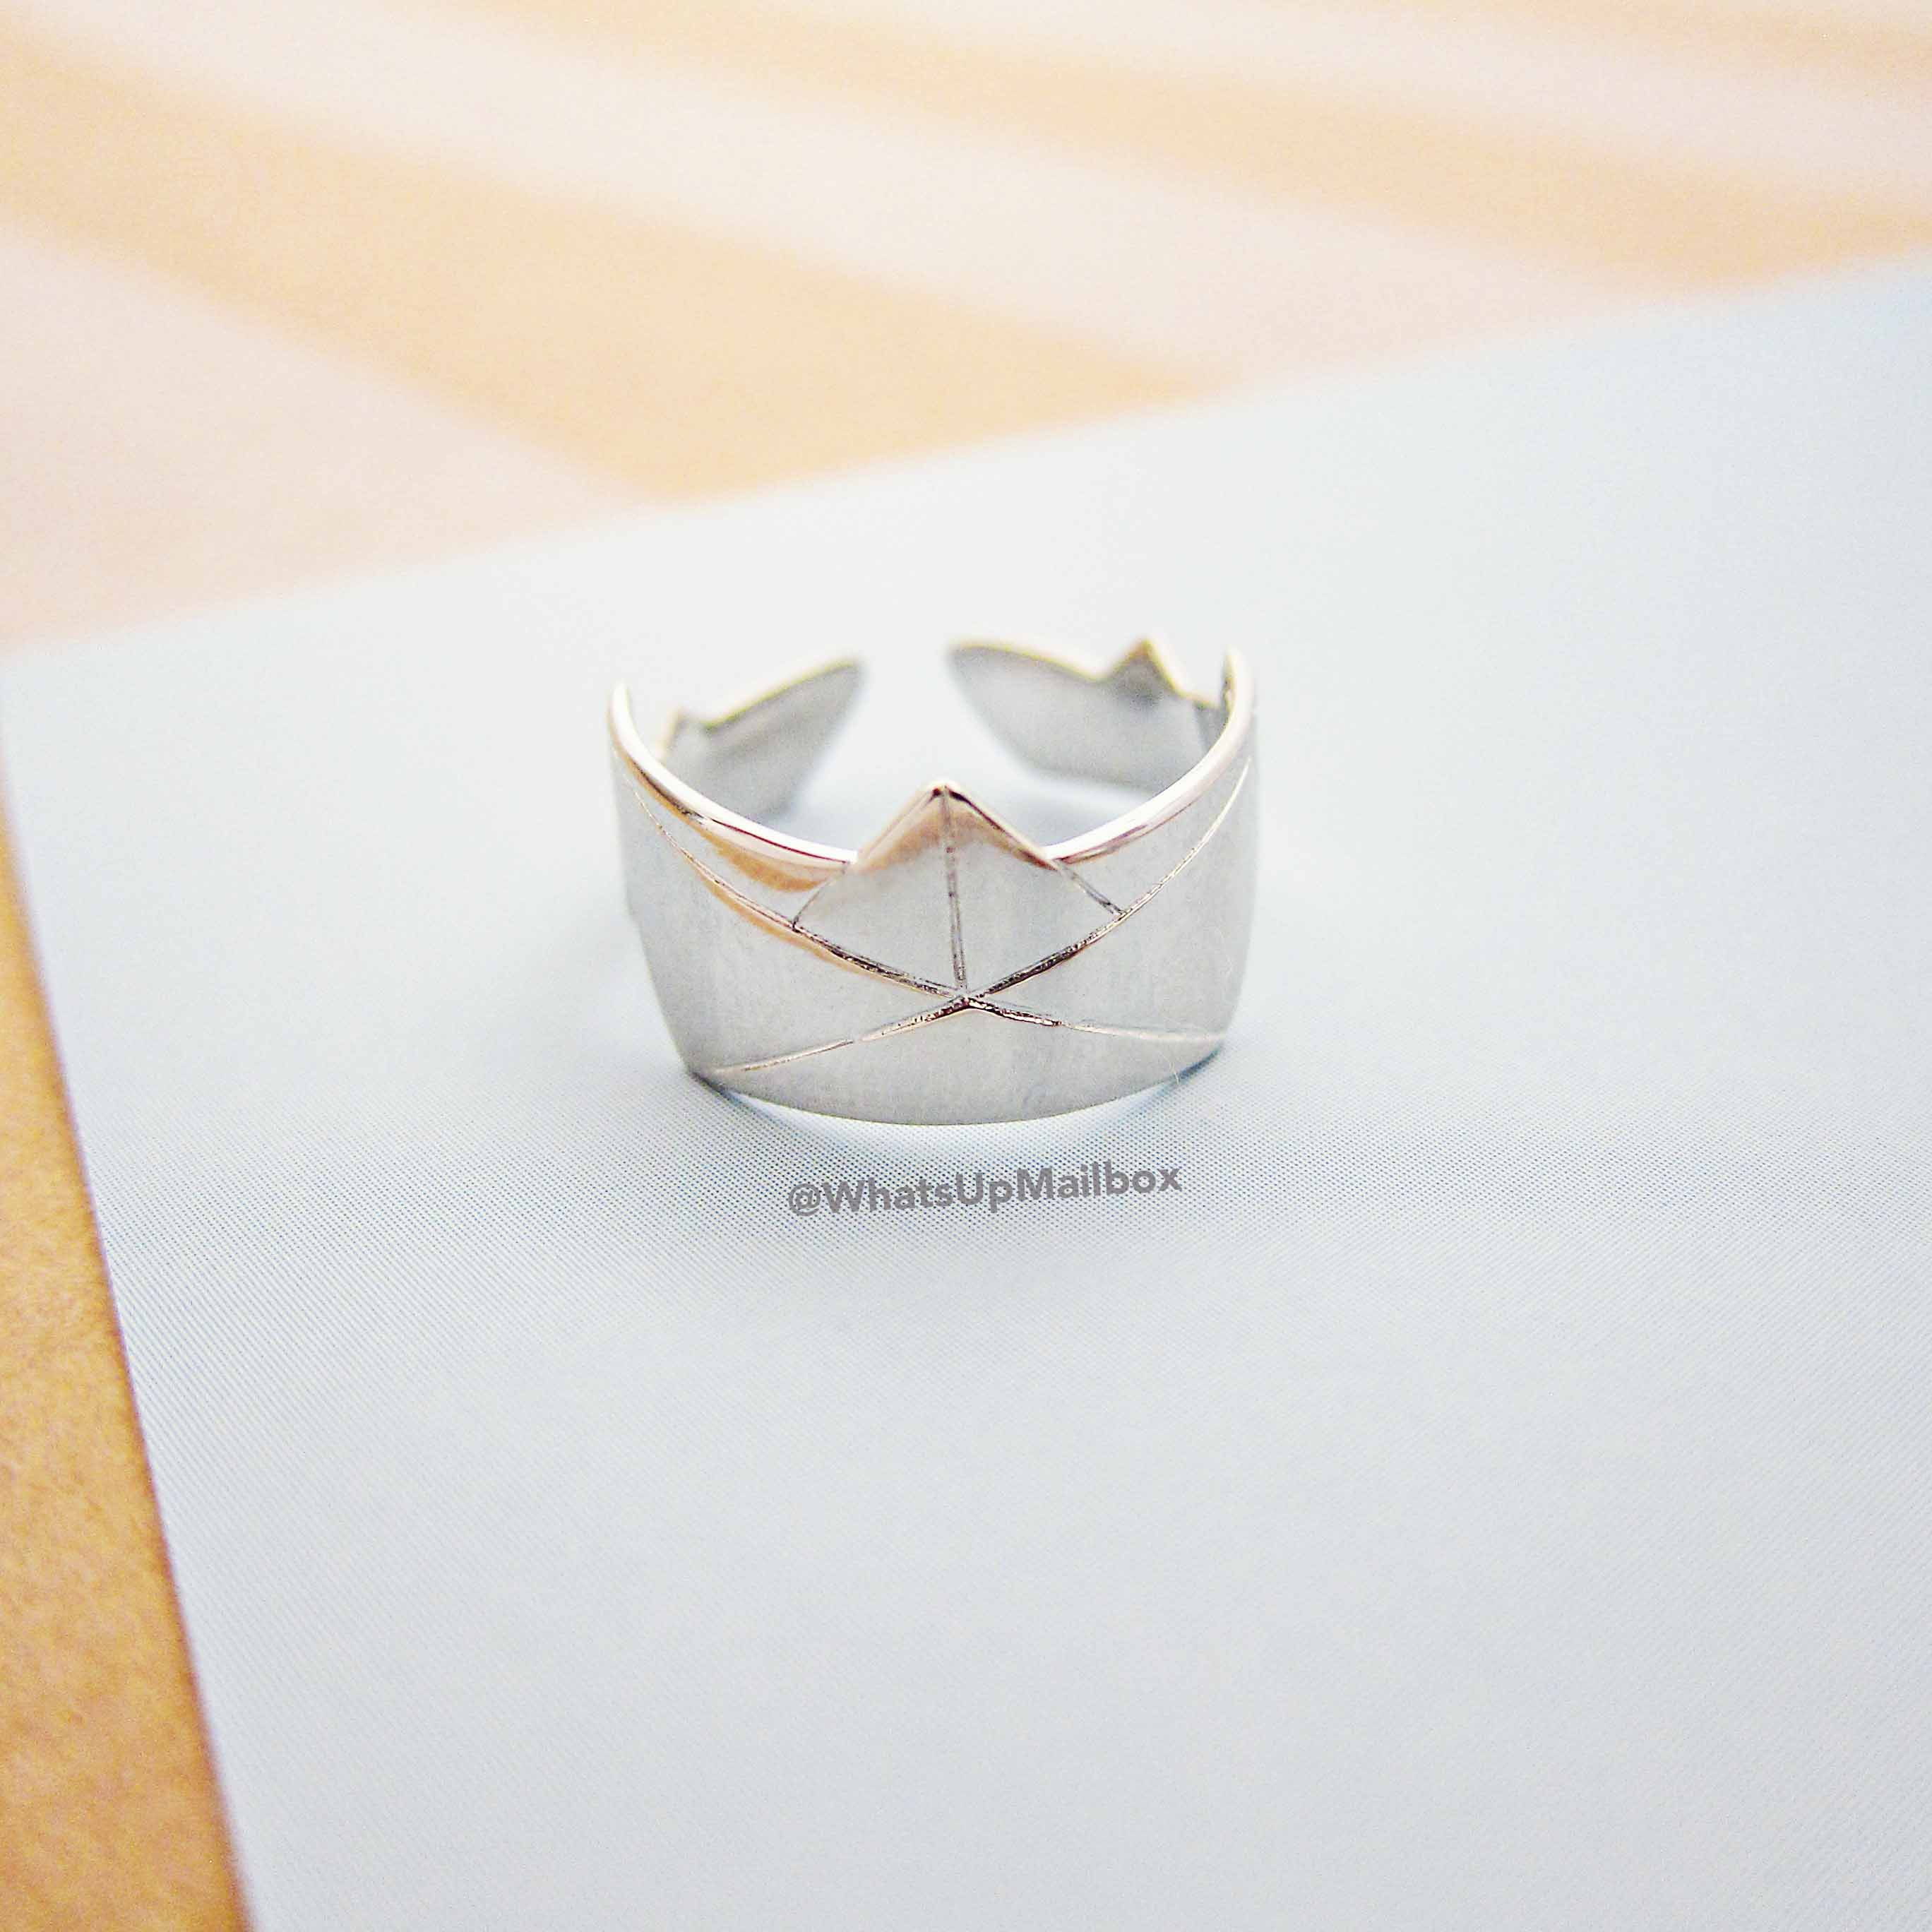 Emma & Chloe August 2016 Item - Peter Hopper Petit Bateau Silver Ring